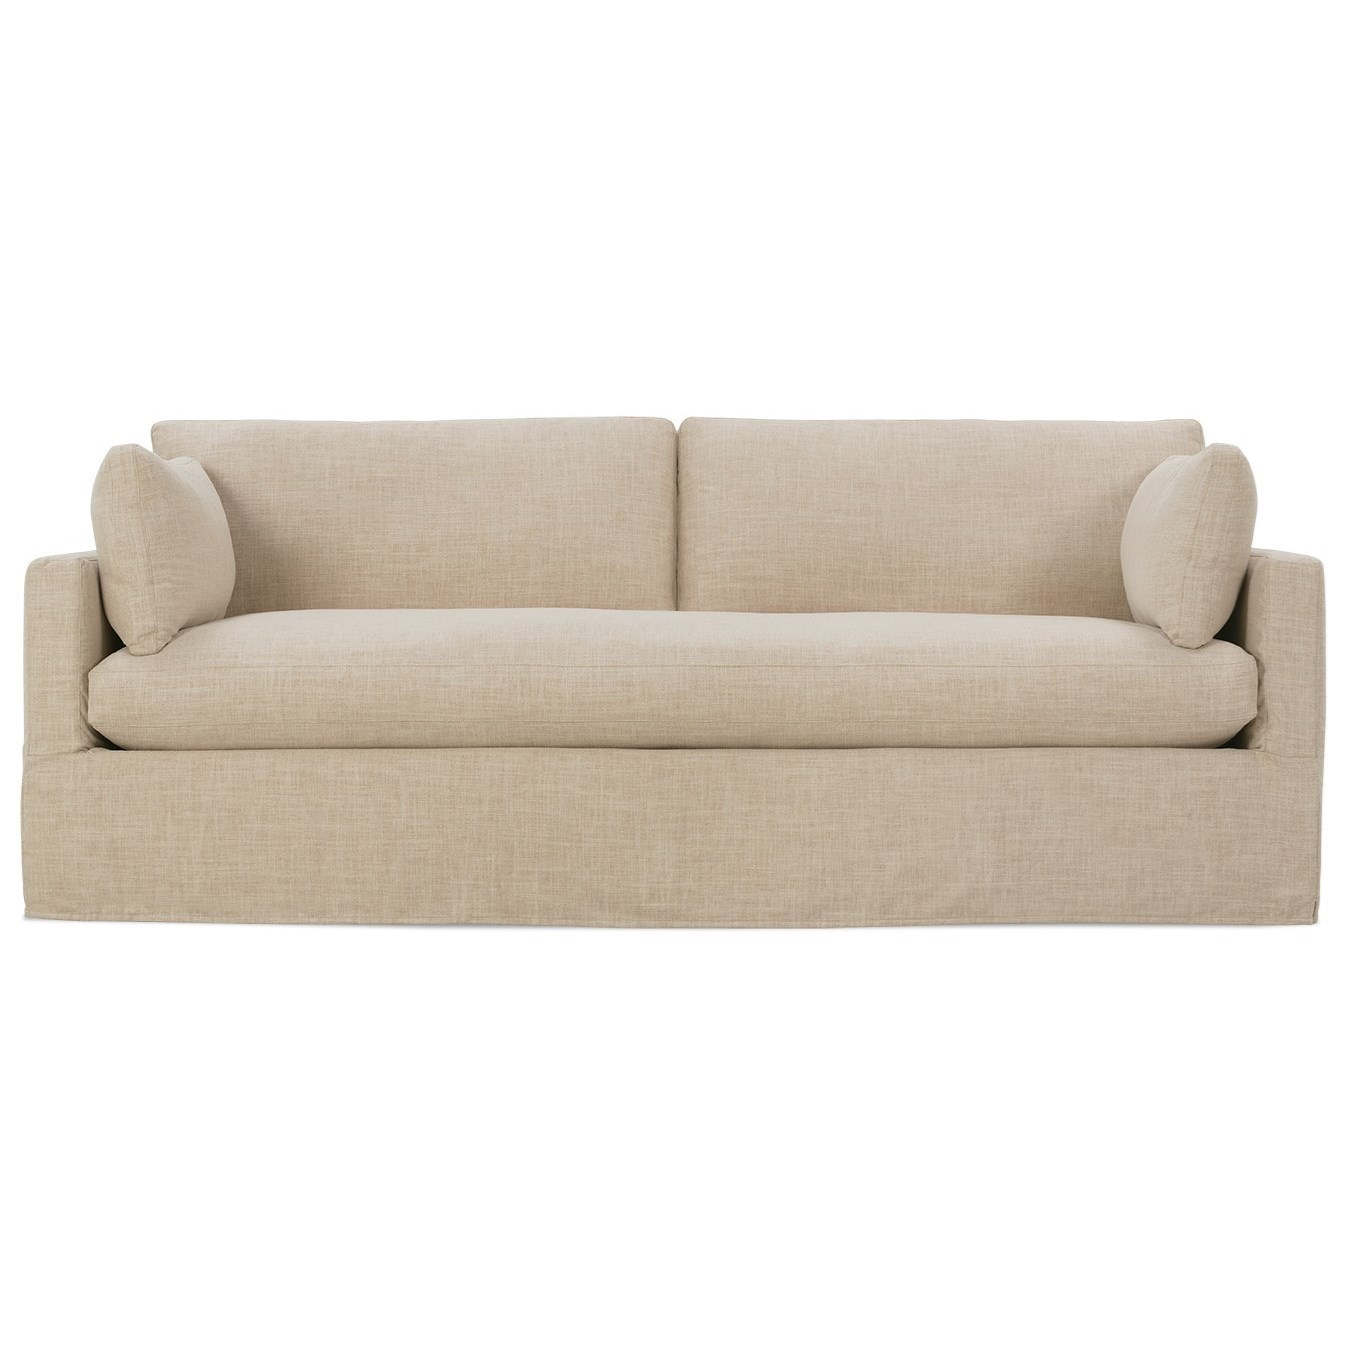 threshold sofa cover moroso field price rowe slipcover colors  blog avie